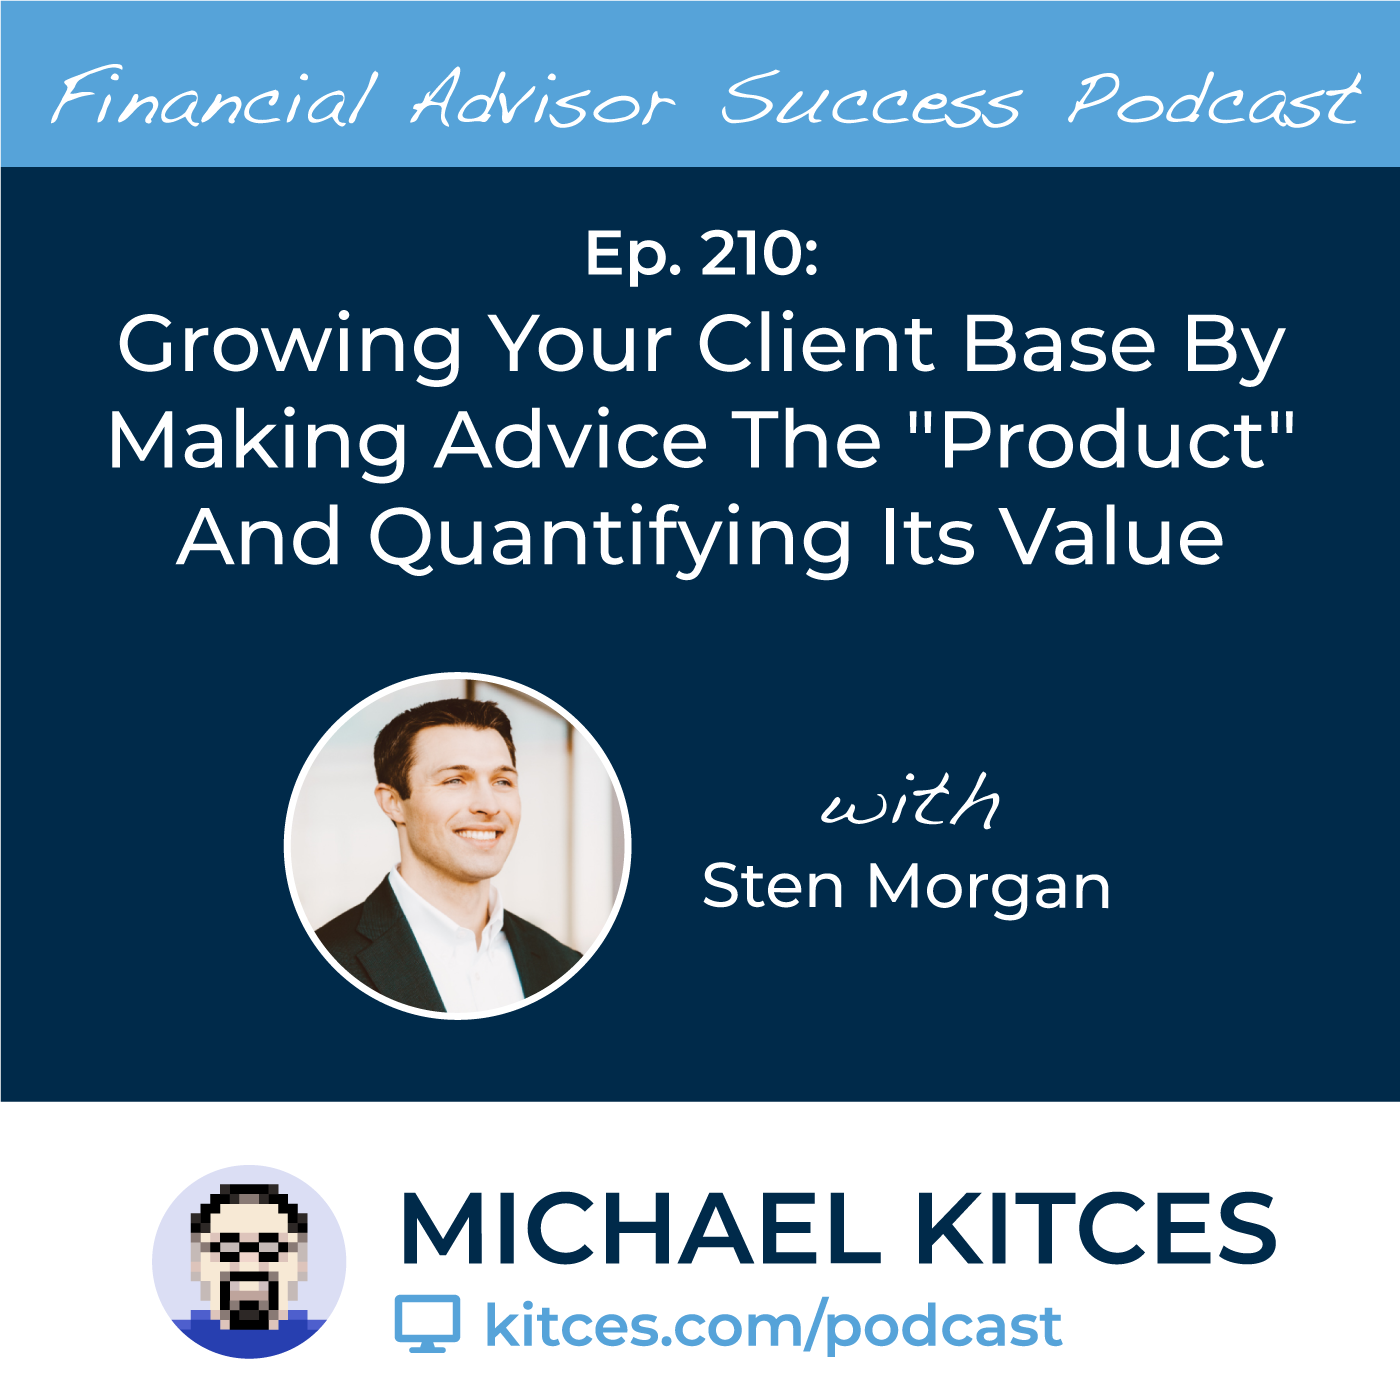 """Ep 210: Growing Your Client Base By Making Advice The """"Product"""" And Quantifying Its Value with Sten Morgan"""